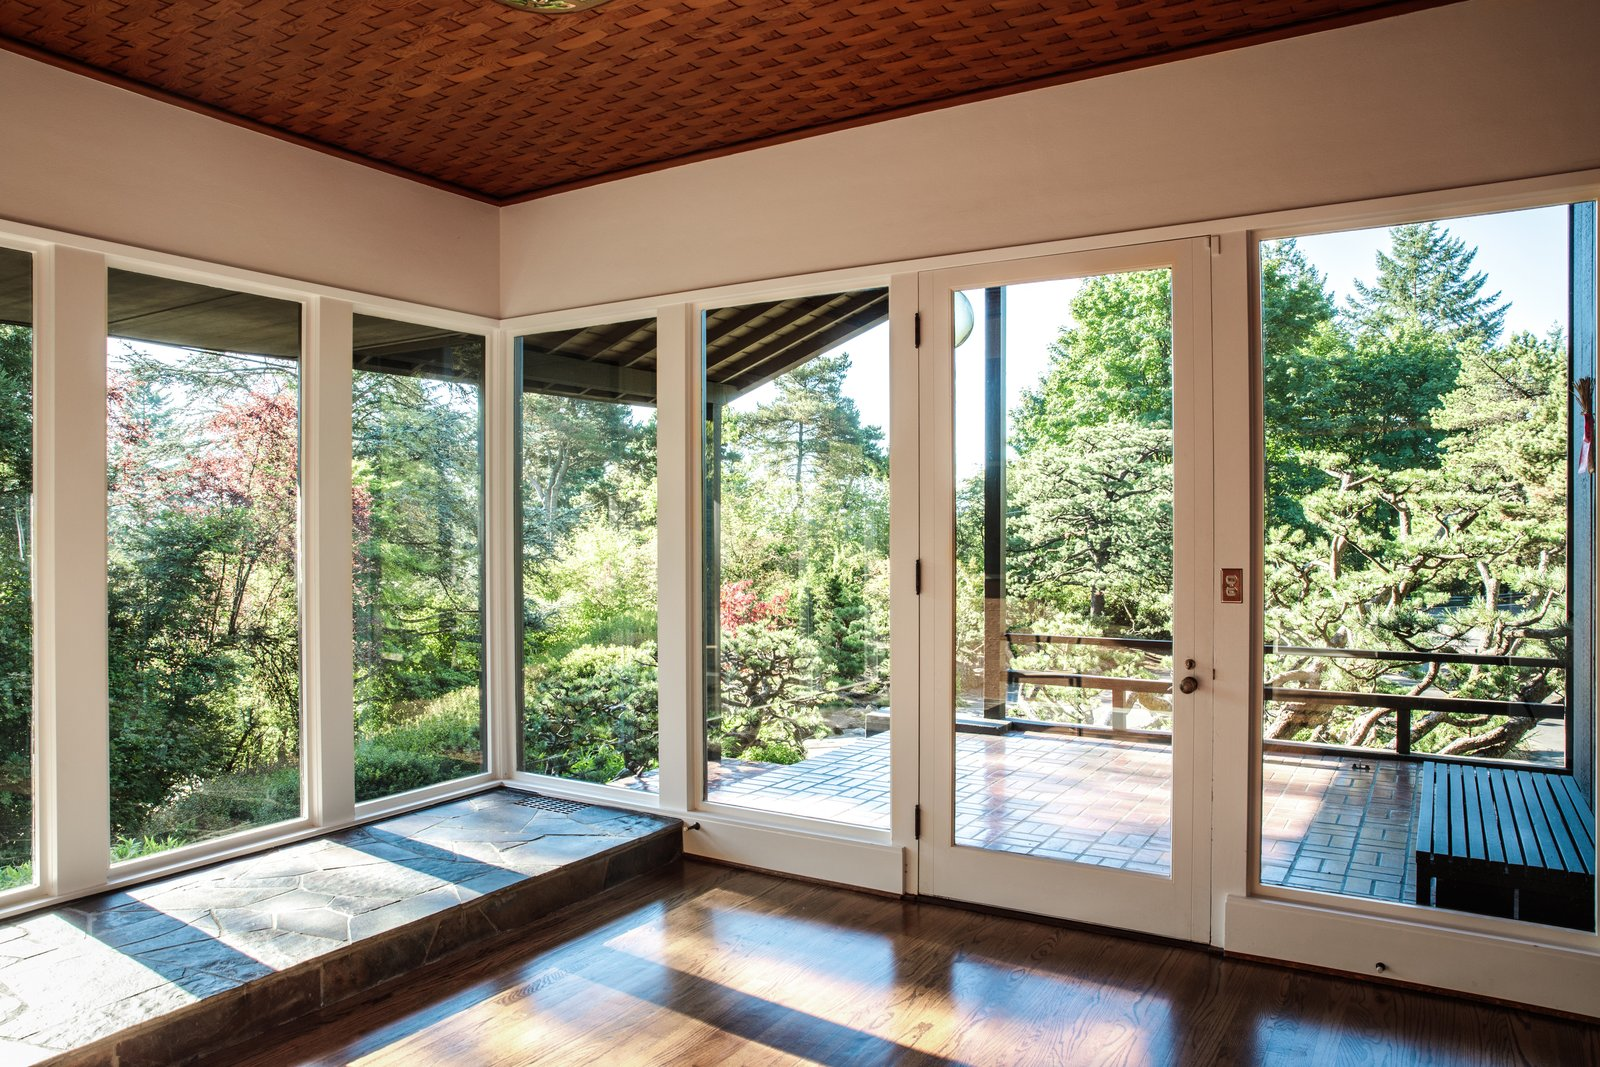 Windows Contractor Patrick O'Neil repaired the woven Douglas fir ceiling in the foyer.  Photo 9 of 15 in Nearly 80 Years Later, an Architect Rescues a Japanese-Inspired  Masterwork Designed by His Father